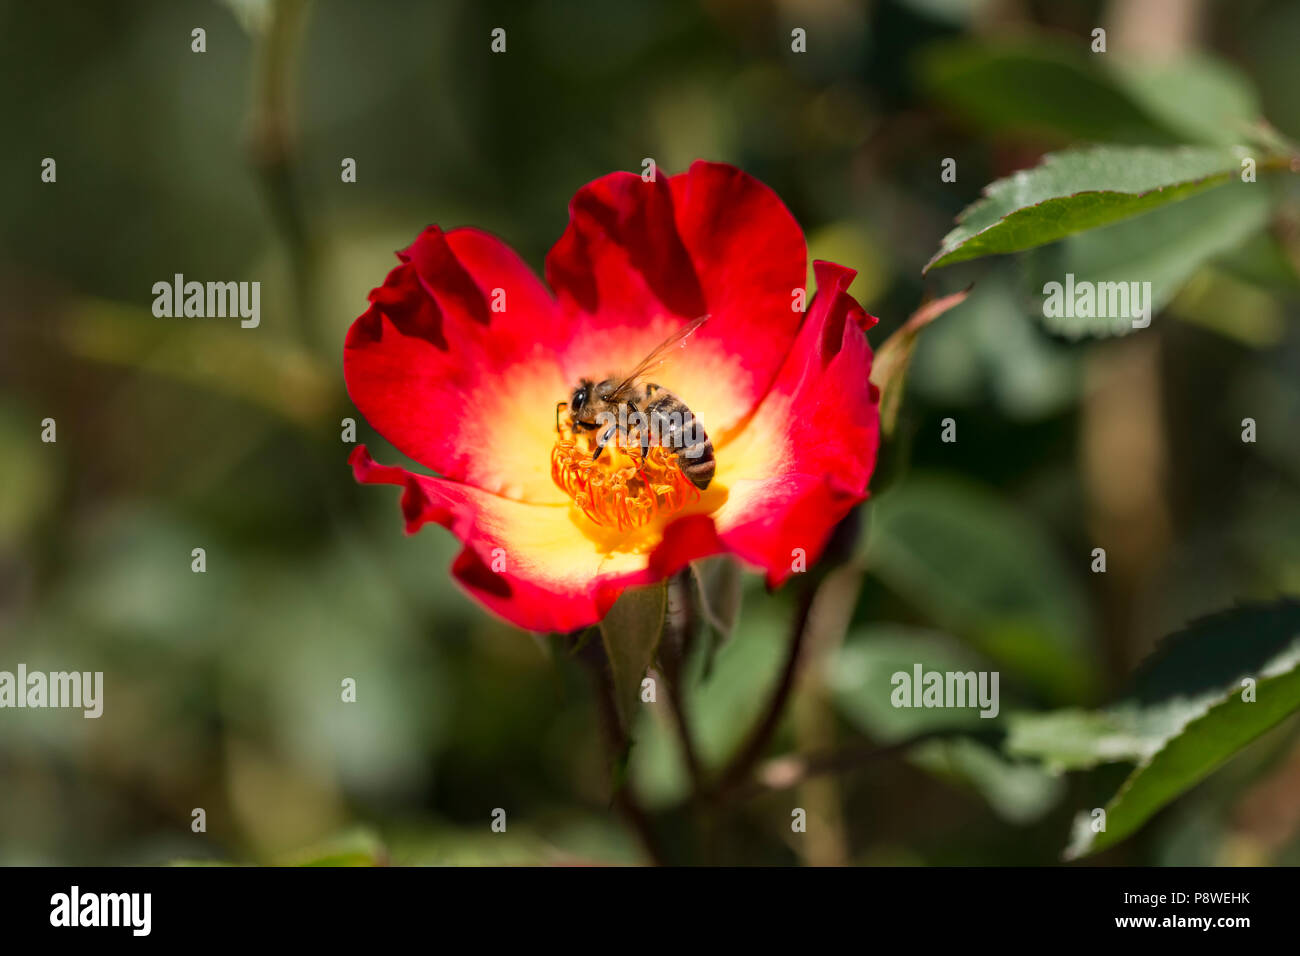 honey bee collects flower nectar from a red flower Stock Photo